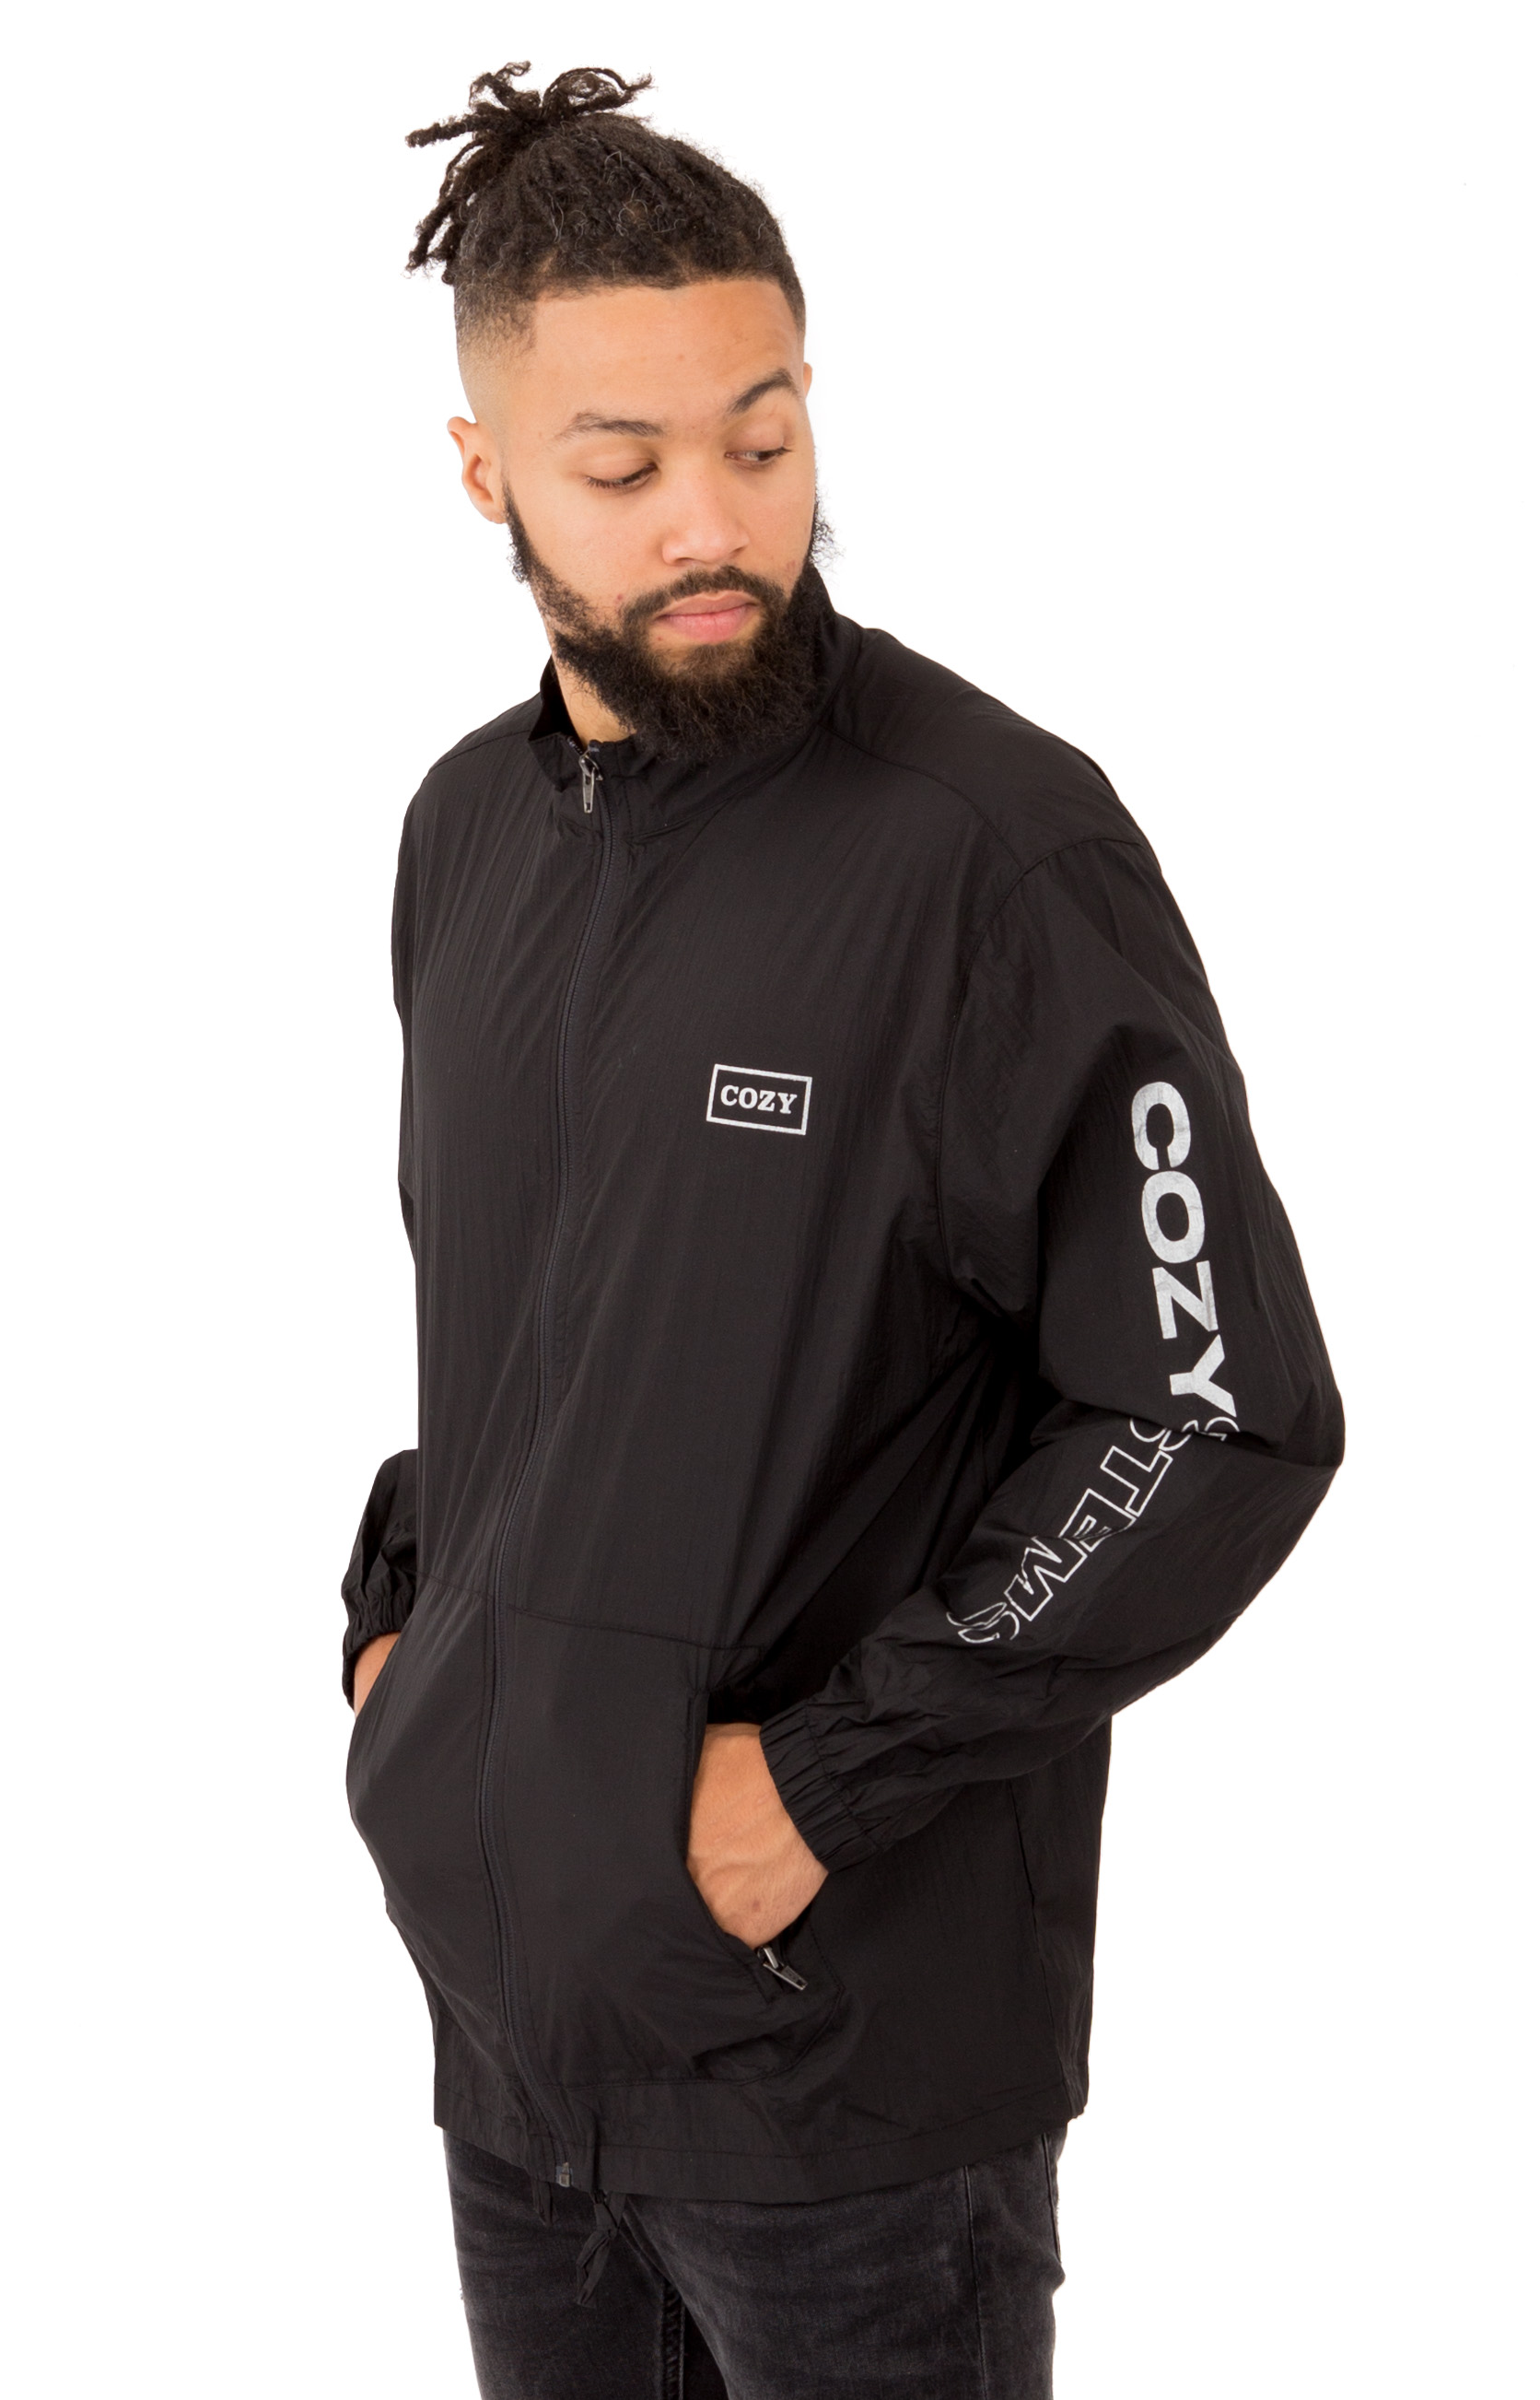 Covent Jacket - Black 4